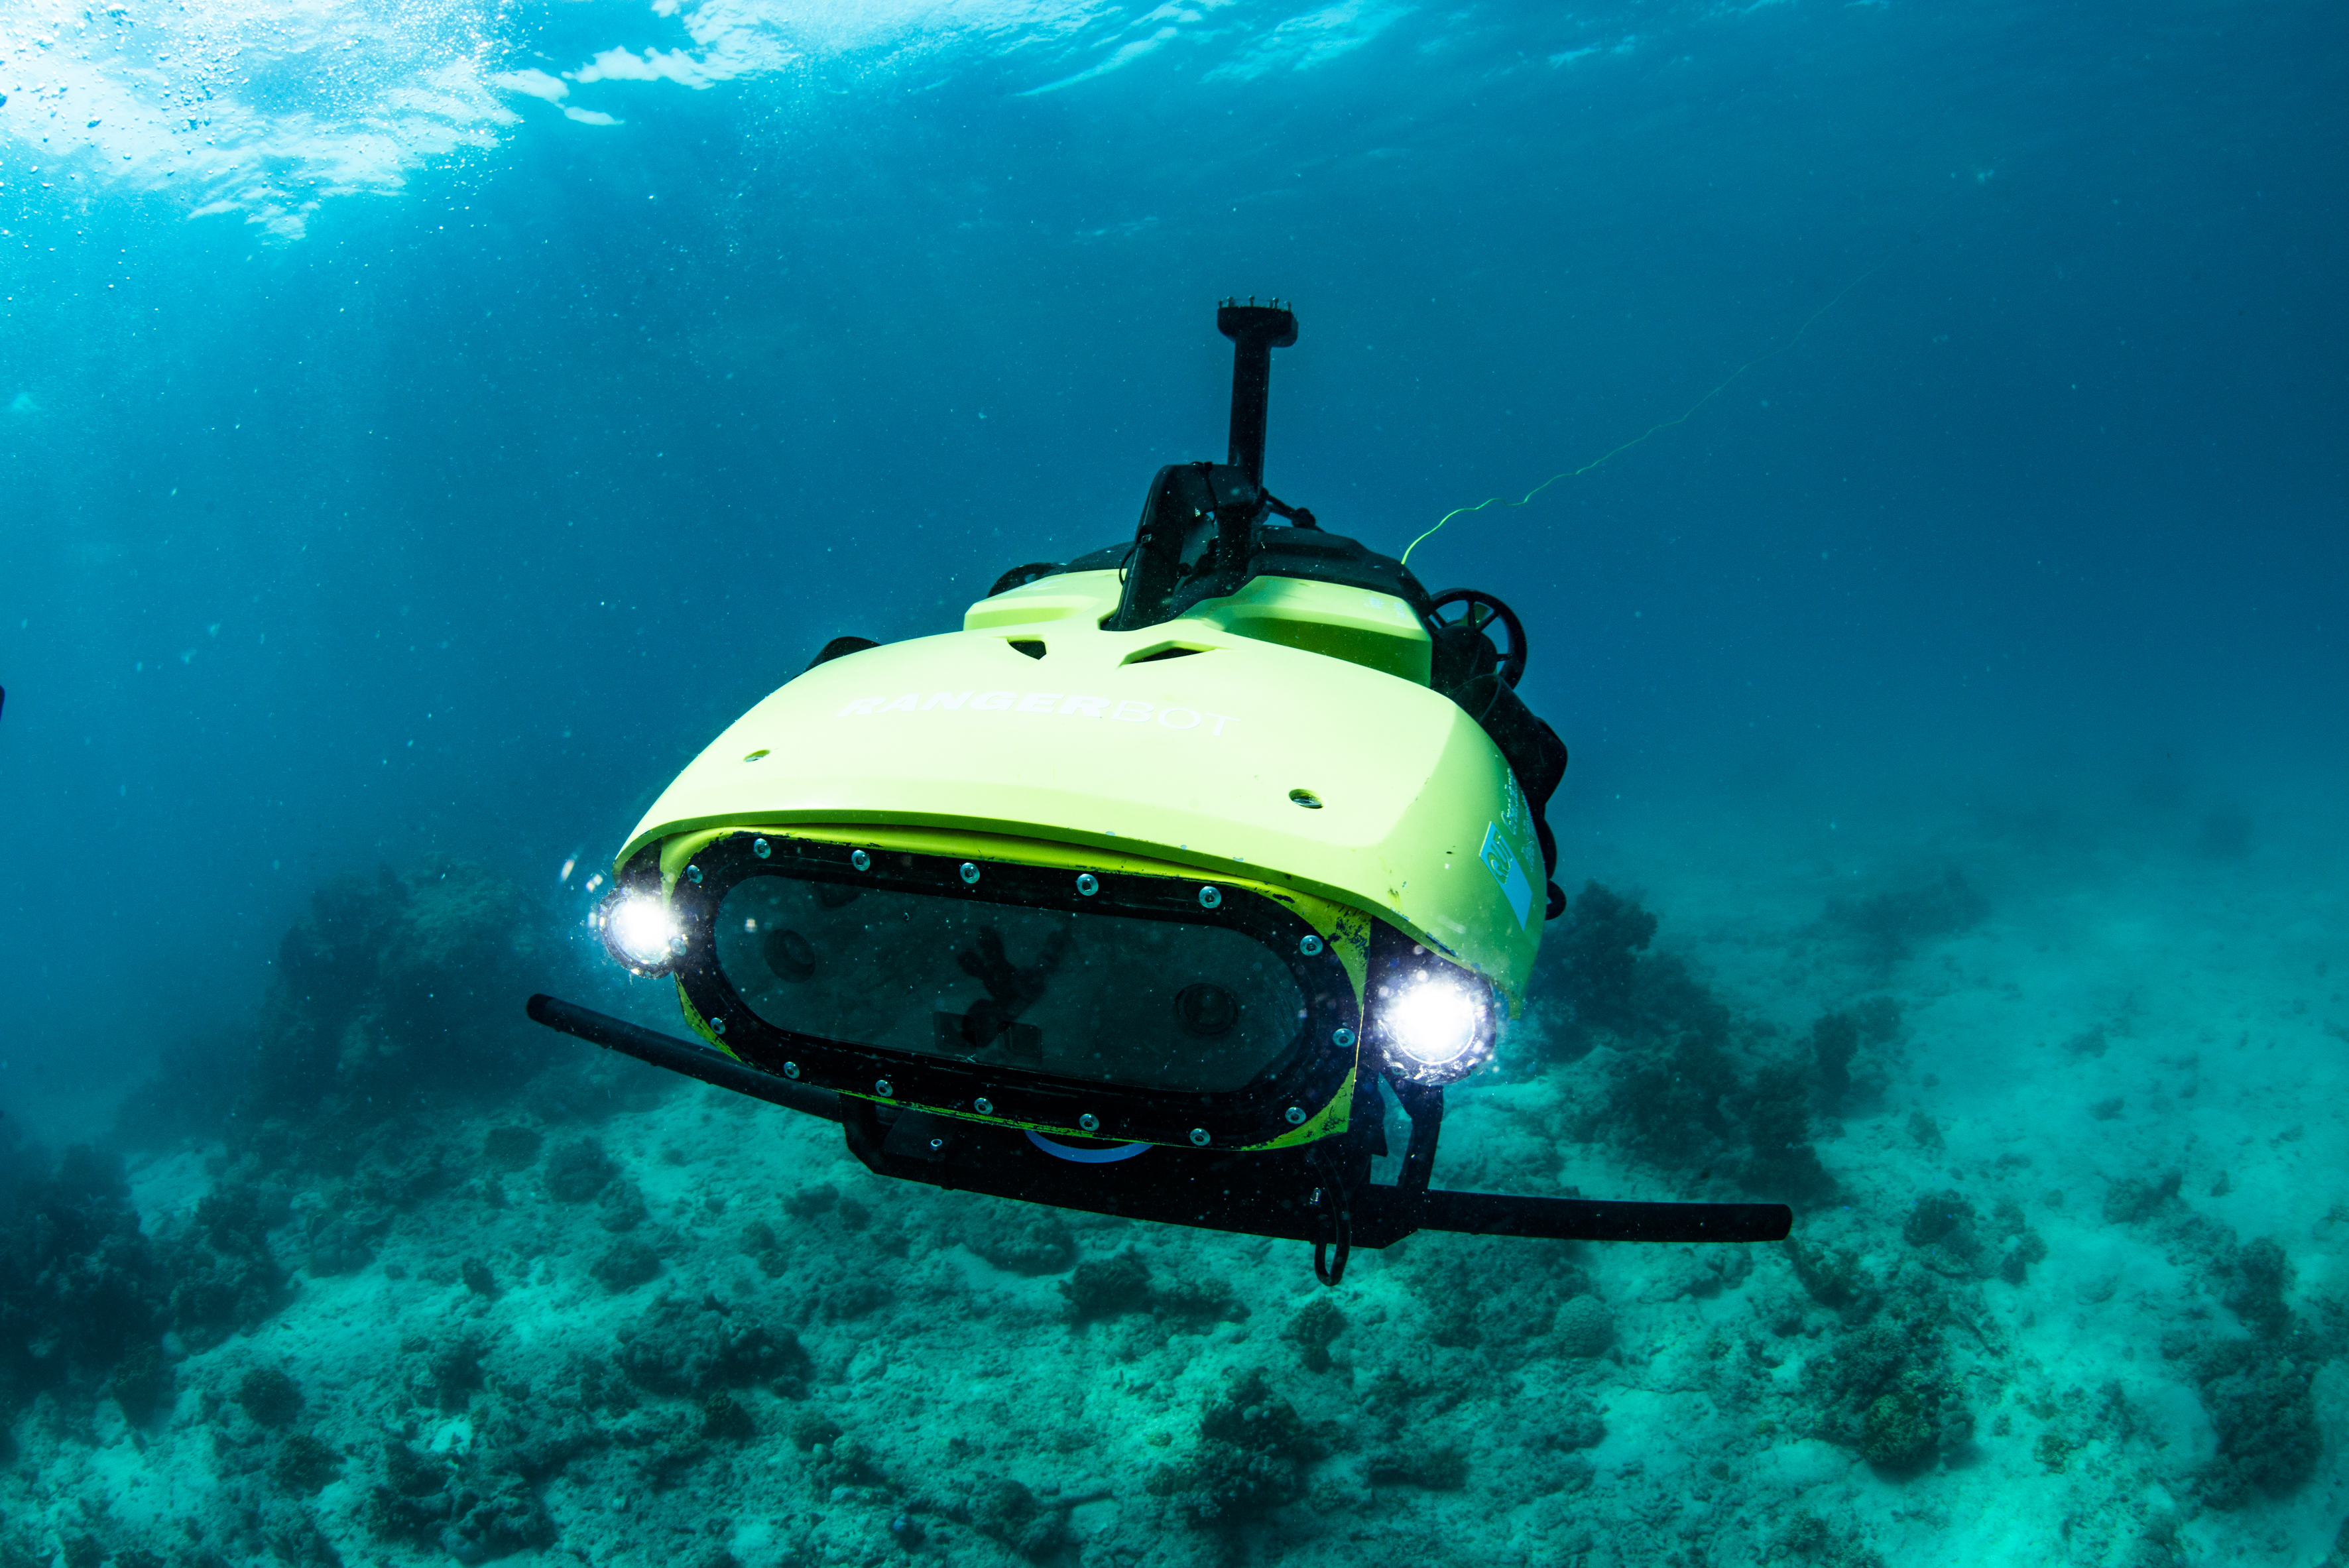 LarvalBot in action. Photo credit: Great Barrier Reef Foundation/Gary Cranitch/Queensland Museum